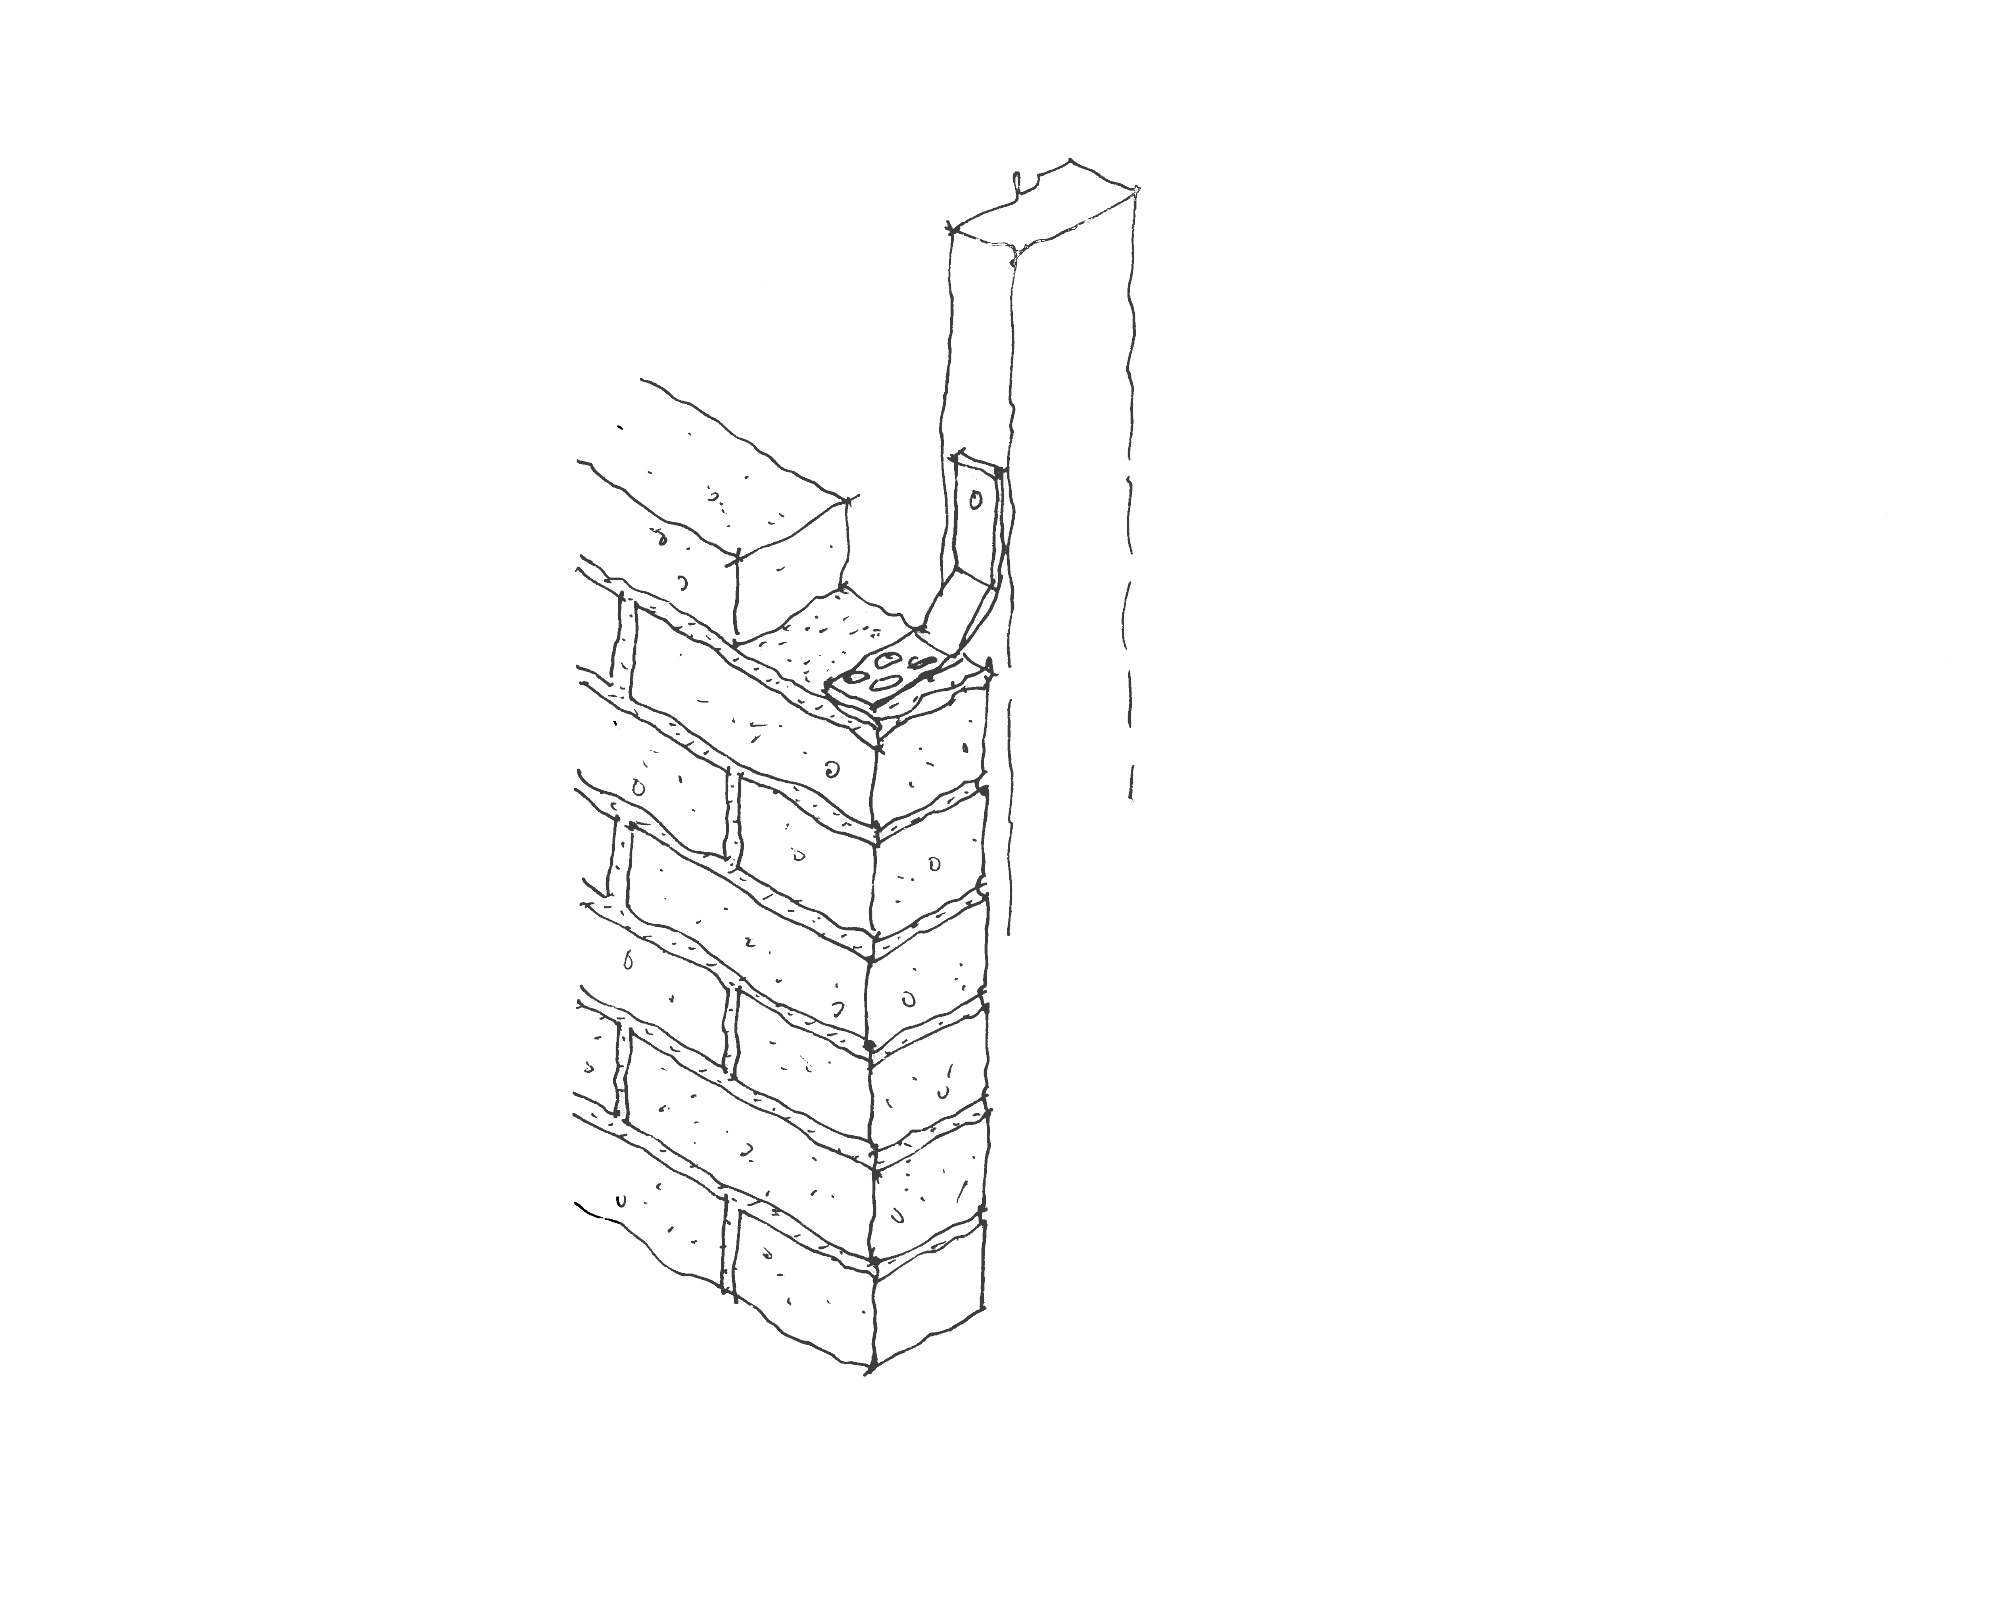 Wall claddings - residential » Seismic Resilience